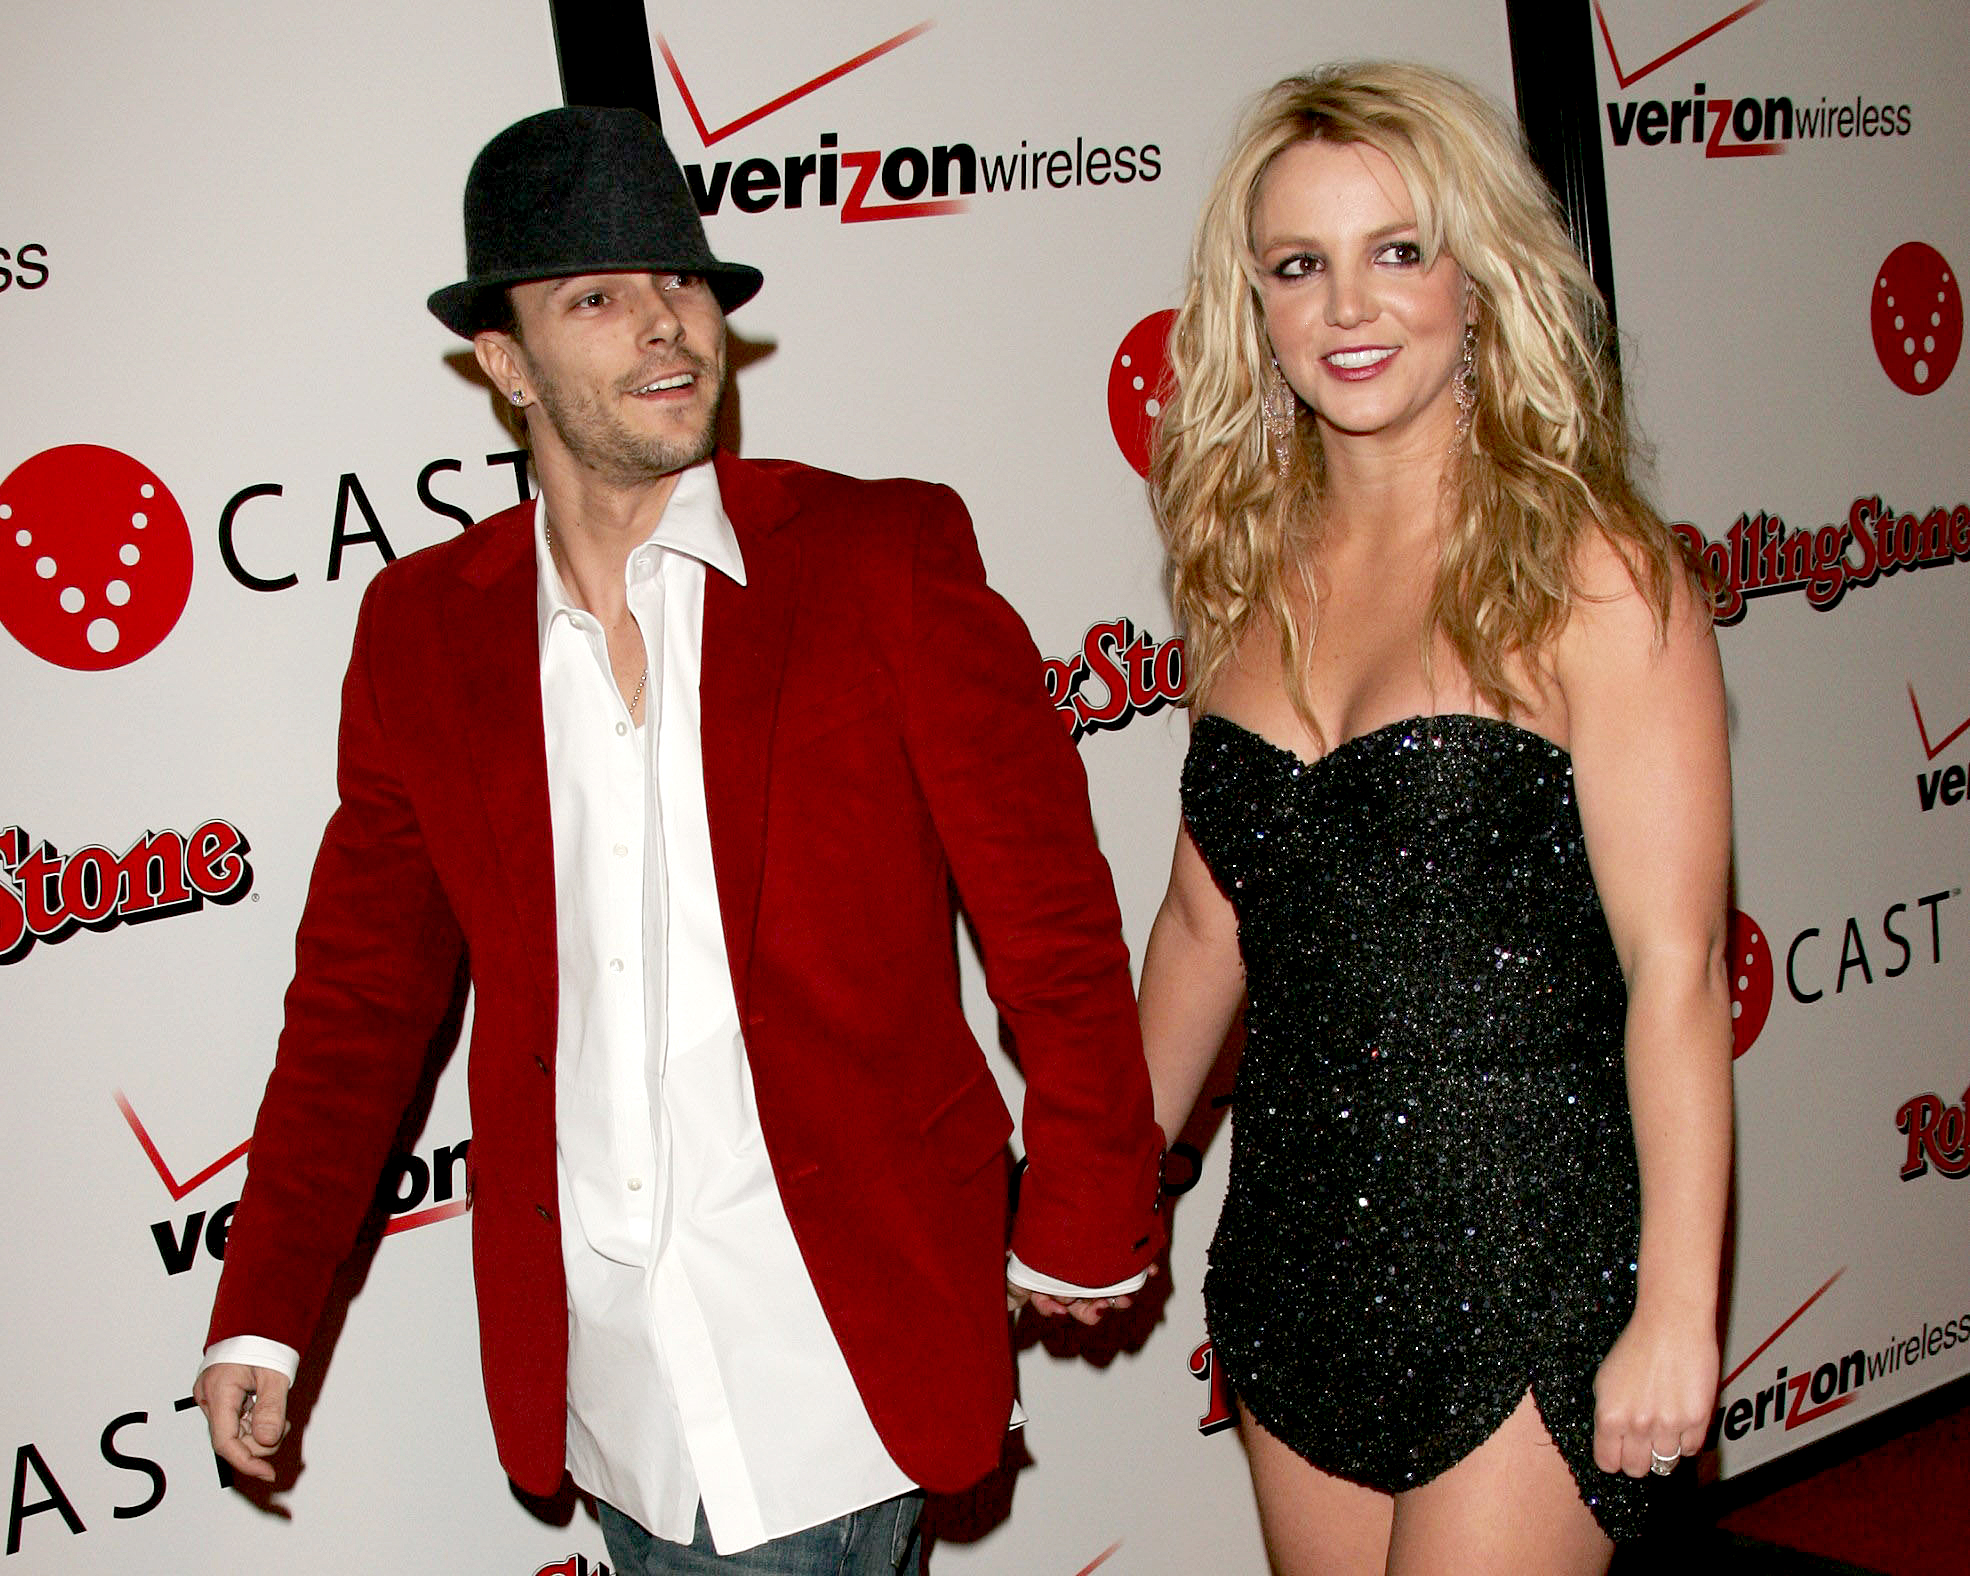 September-2018-Kevin-Federline,-Britney-Spears - After months of back and forth, the couple's drawn-out custody battle finally came to an end, with a settlement reached between the two parties in September. The agreement saw Britney increase her payments for her sons from $20,000 to roughly $35,000 a month.